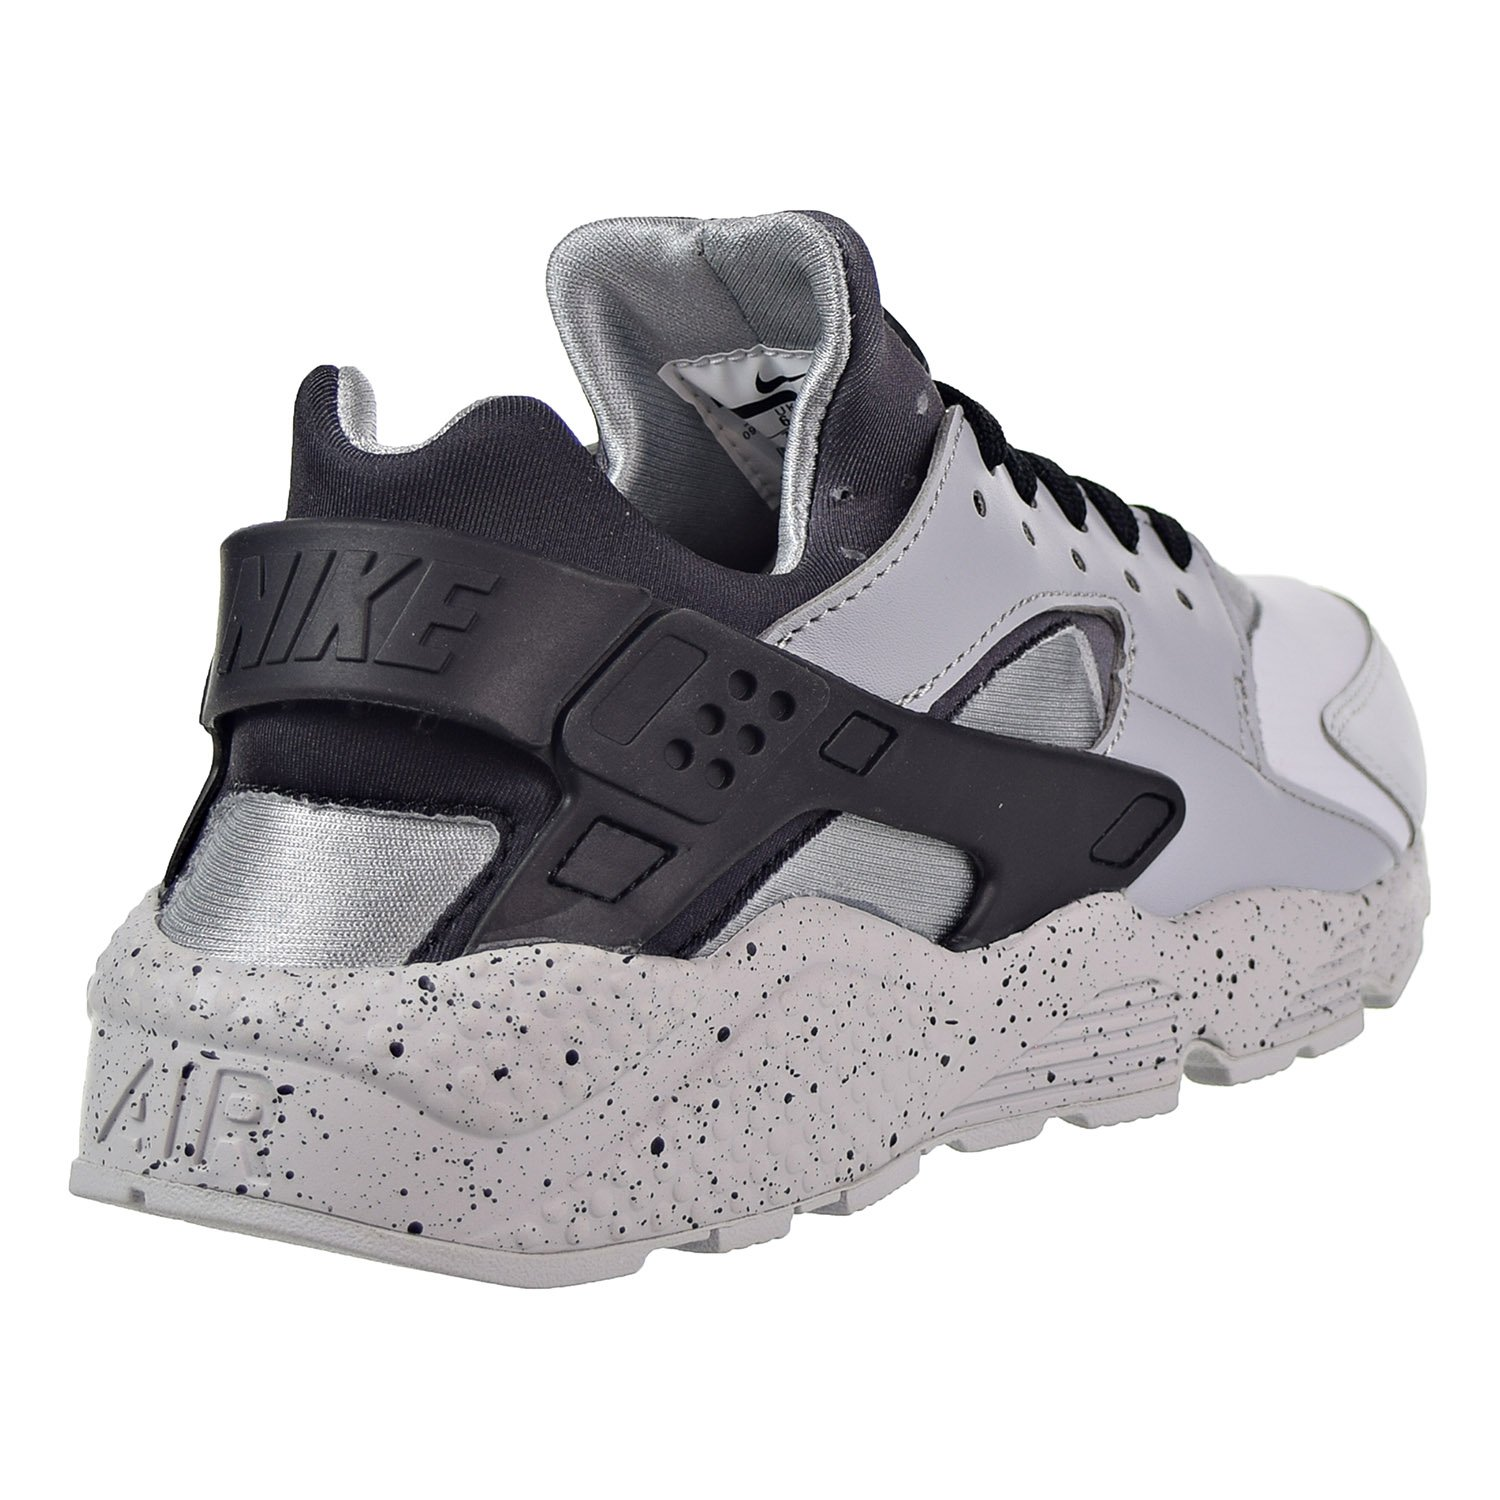 cd8304d0a8a07 Nike Men s Air Huarache Run PRM Pure Platinum Wolf Grey Black 704830-011  (Size  13)  Buy Online at Low Prices in India - Amazon.in